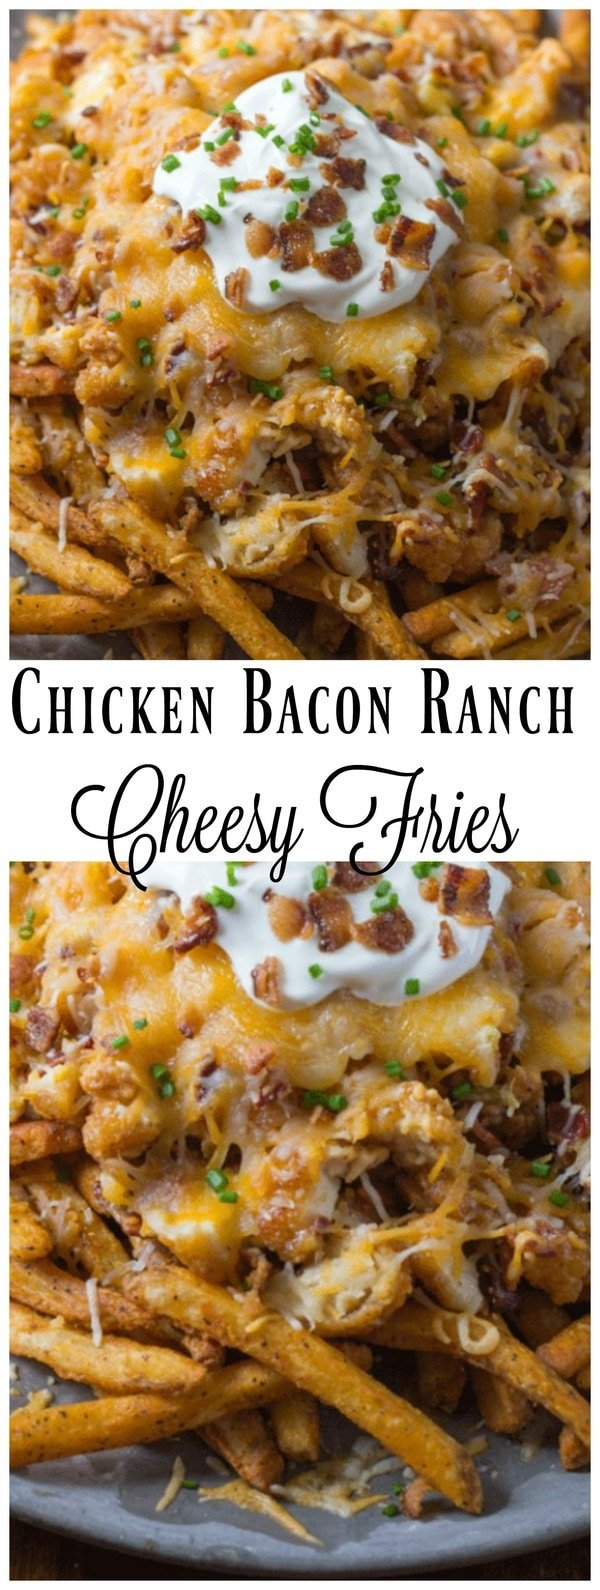 Chicken Bacon Ranch Cheesy Fries. These loaded fries are the perfect party appetizer or if you want to have one amazing dinner and wow your family then these chicken cheese fries are perfect! #Chicken #Bacon #Ranch #CheeseFries #LoadedFries #ChickenBaconFries #CheesyFries